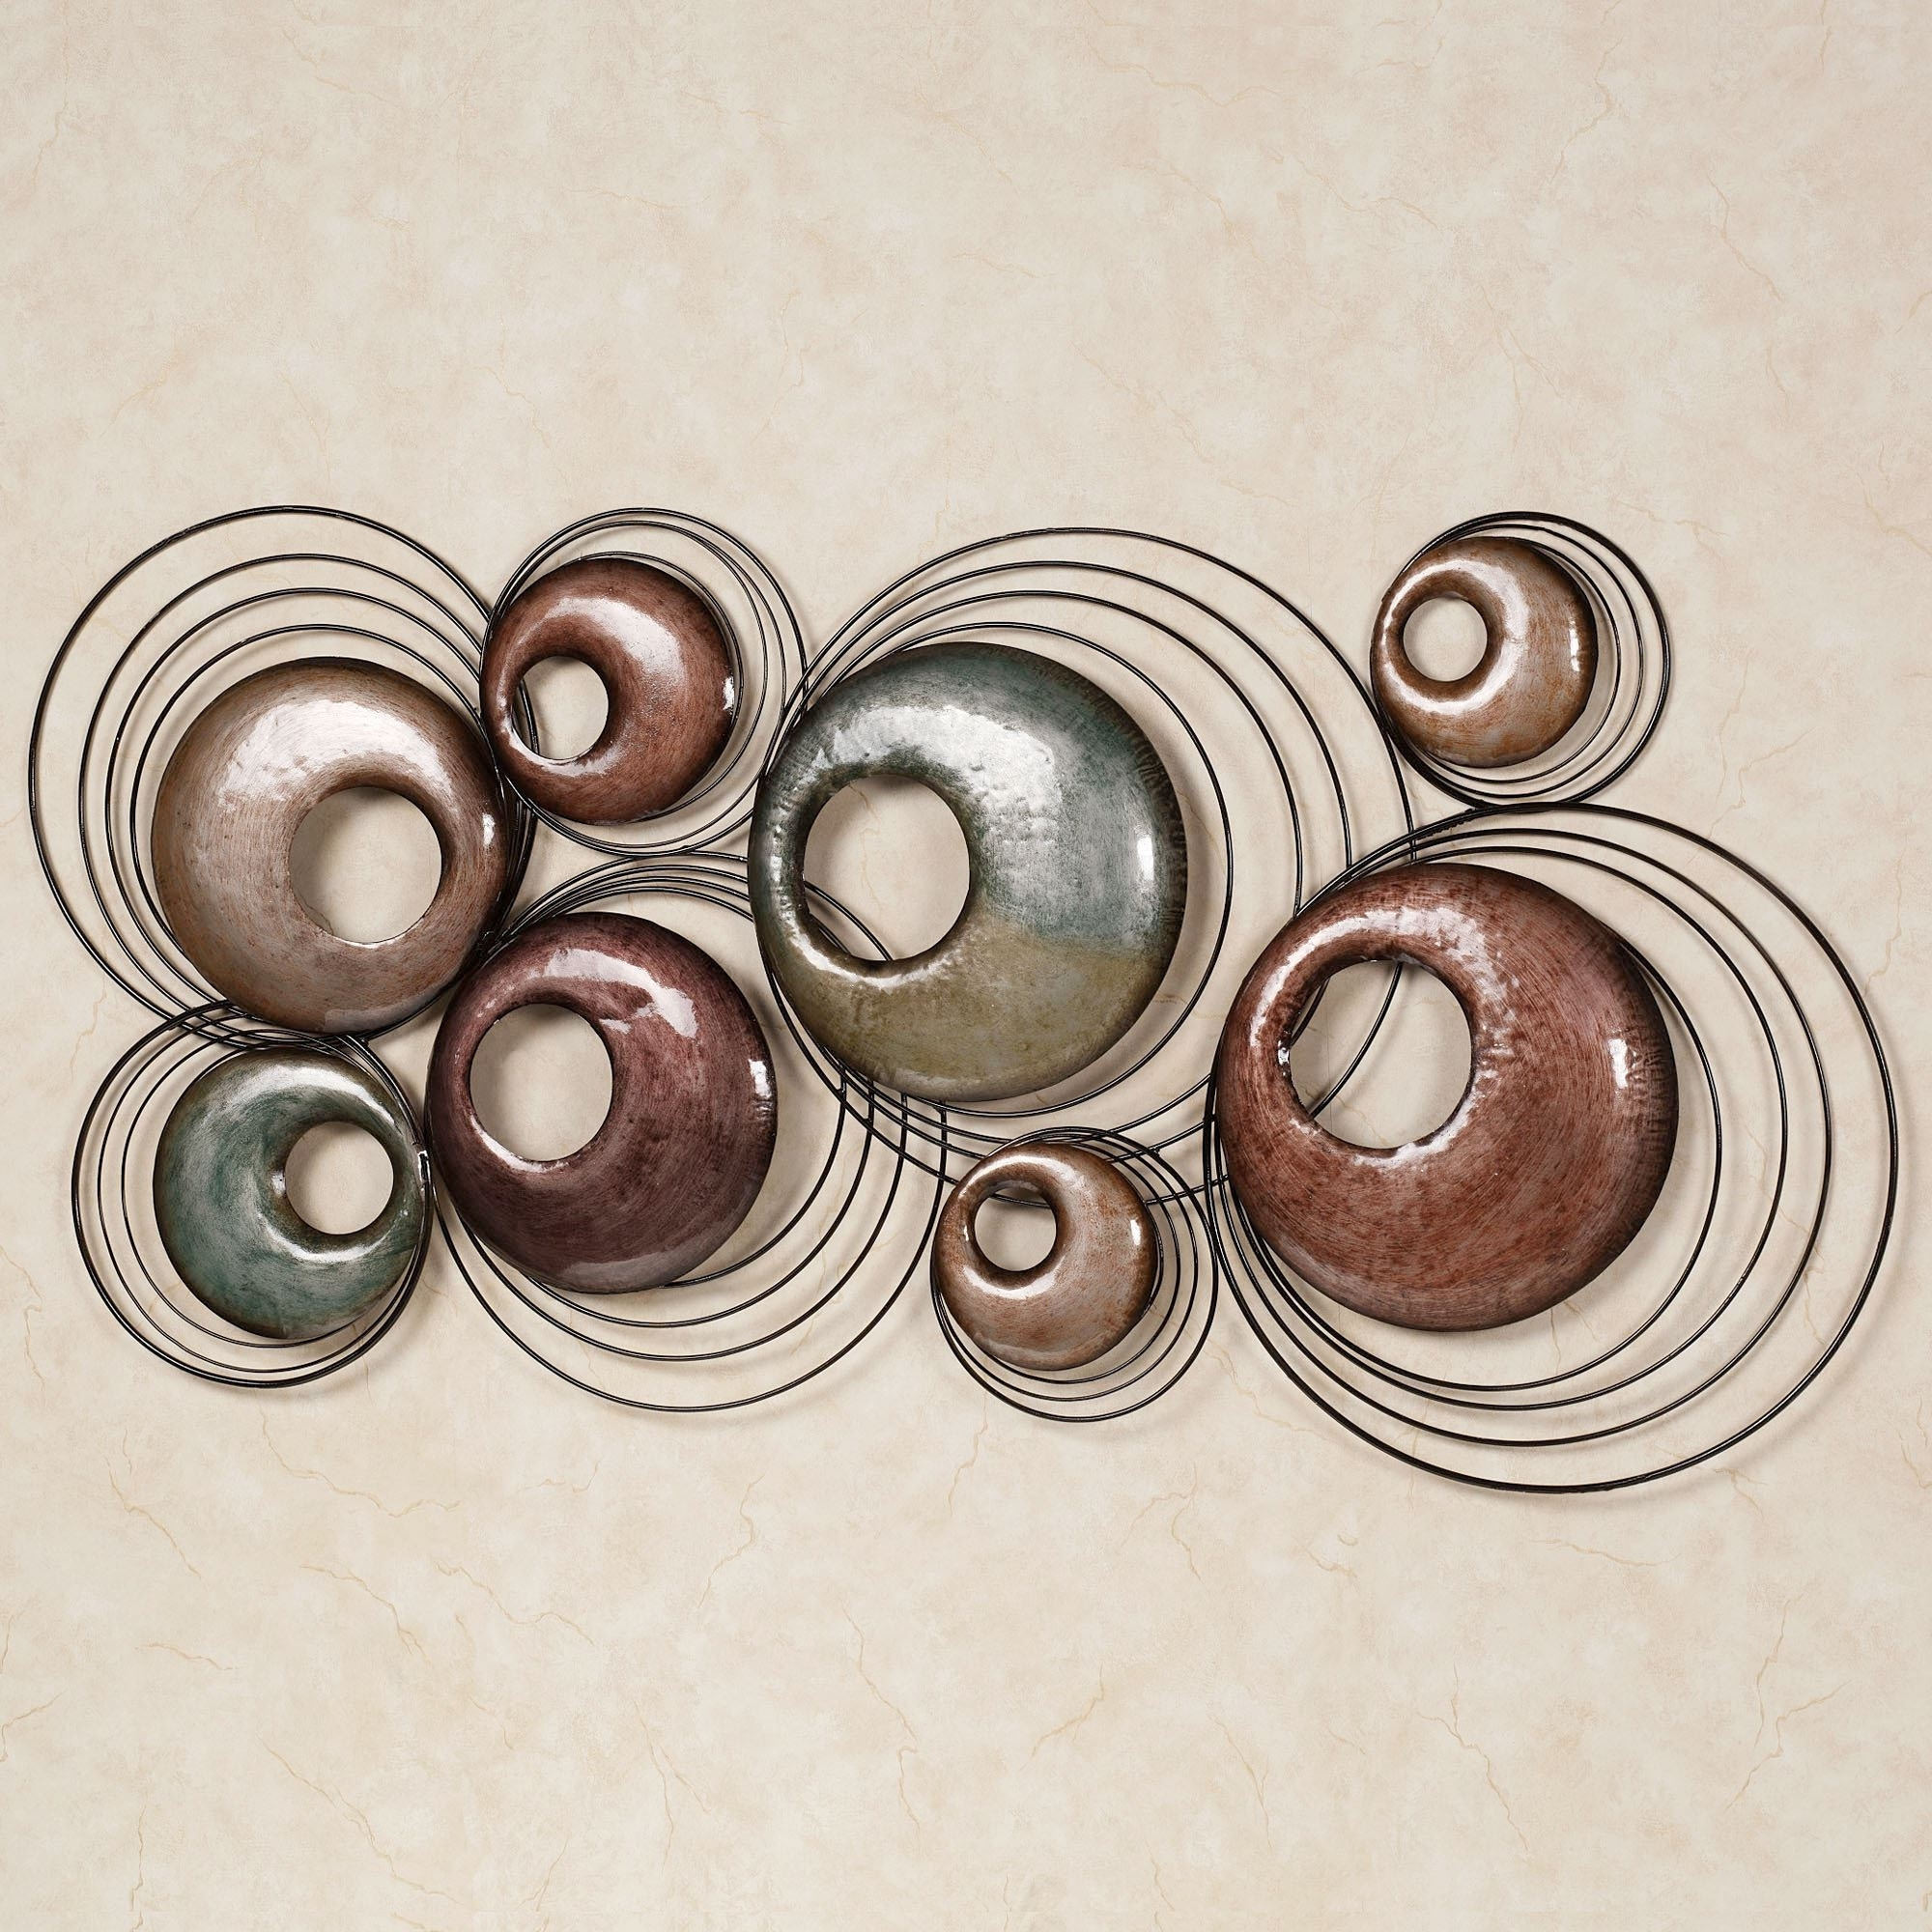 Metal Wall Art Sculptures Intended For Most Up To Date Echo Metal Wall Sculpture Art (View 7 of 15)